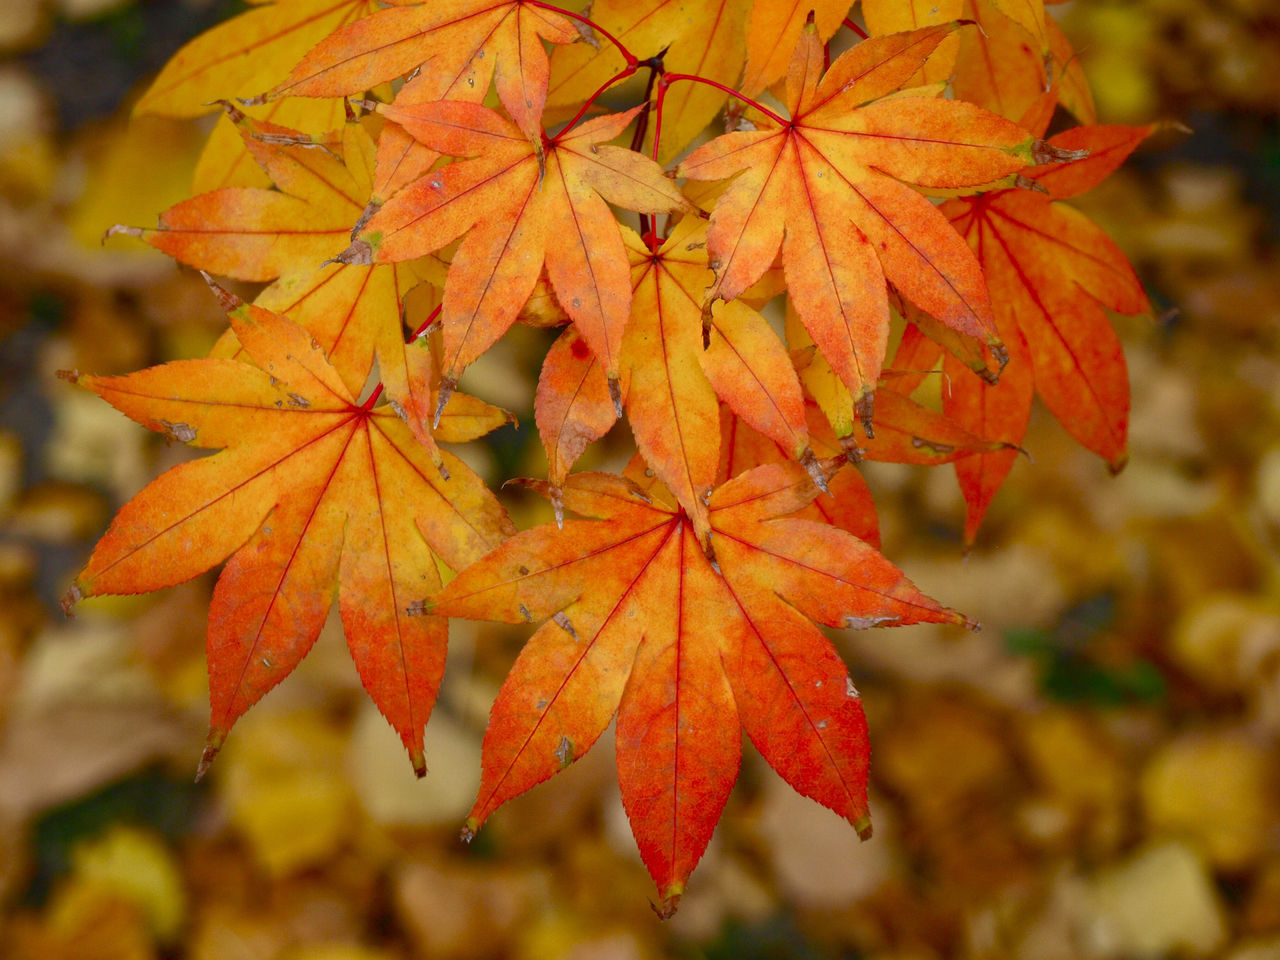 Fire Autumn Beauty In Nature Change Change Your Perspective Close-up Day Fire Leaf Leaves Maple Maple Leaf Nature No People On Fire Orange Color Outdoors Rain Tree Vibrant Color Water Wet Yellow